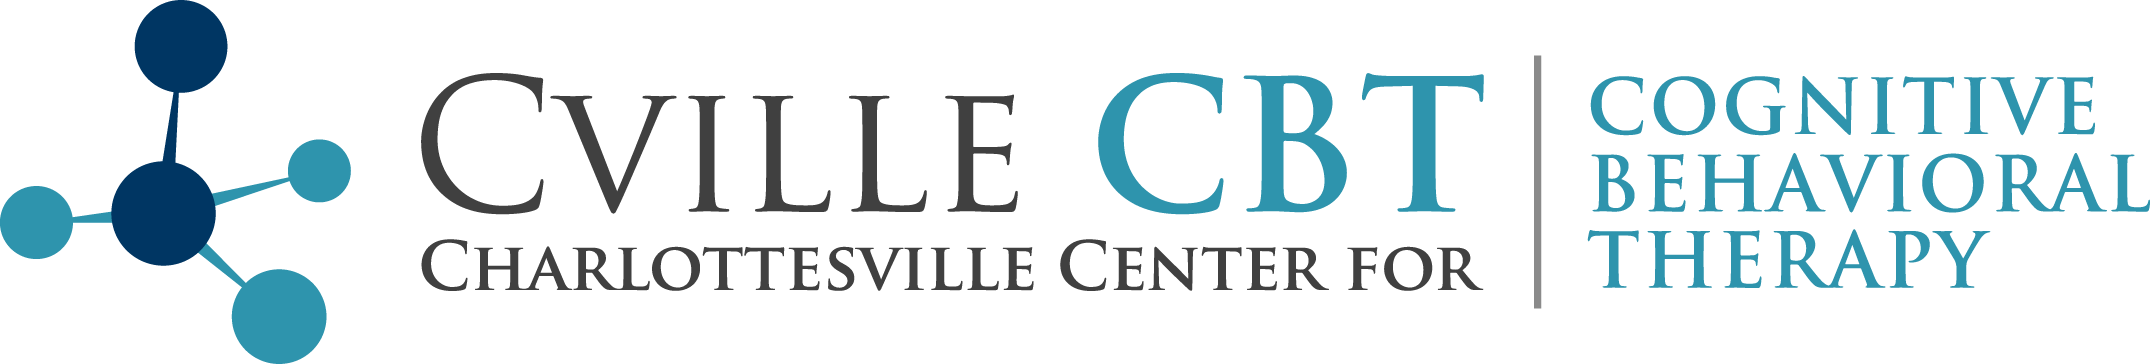 Charlottesville Center for Cognitive Behavioral Therapy